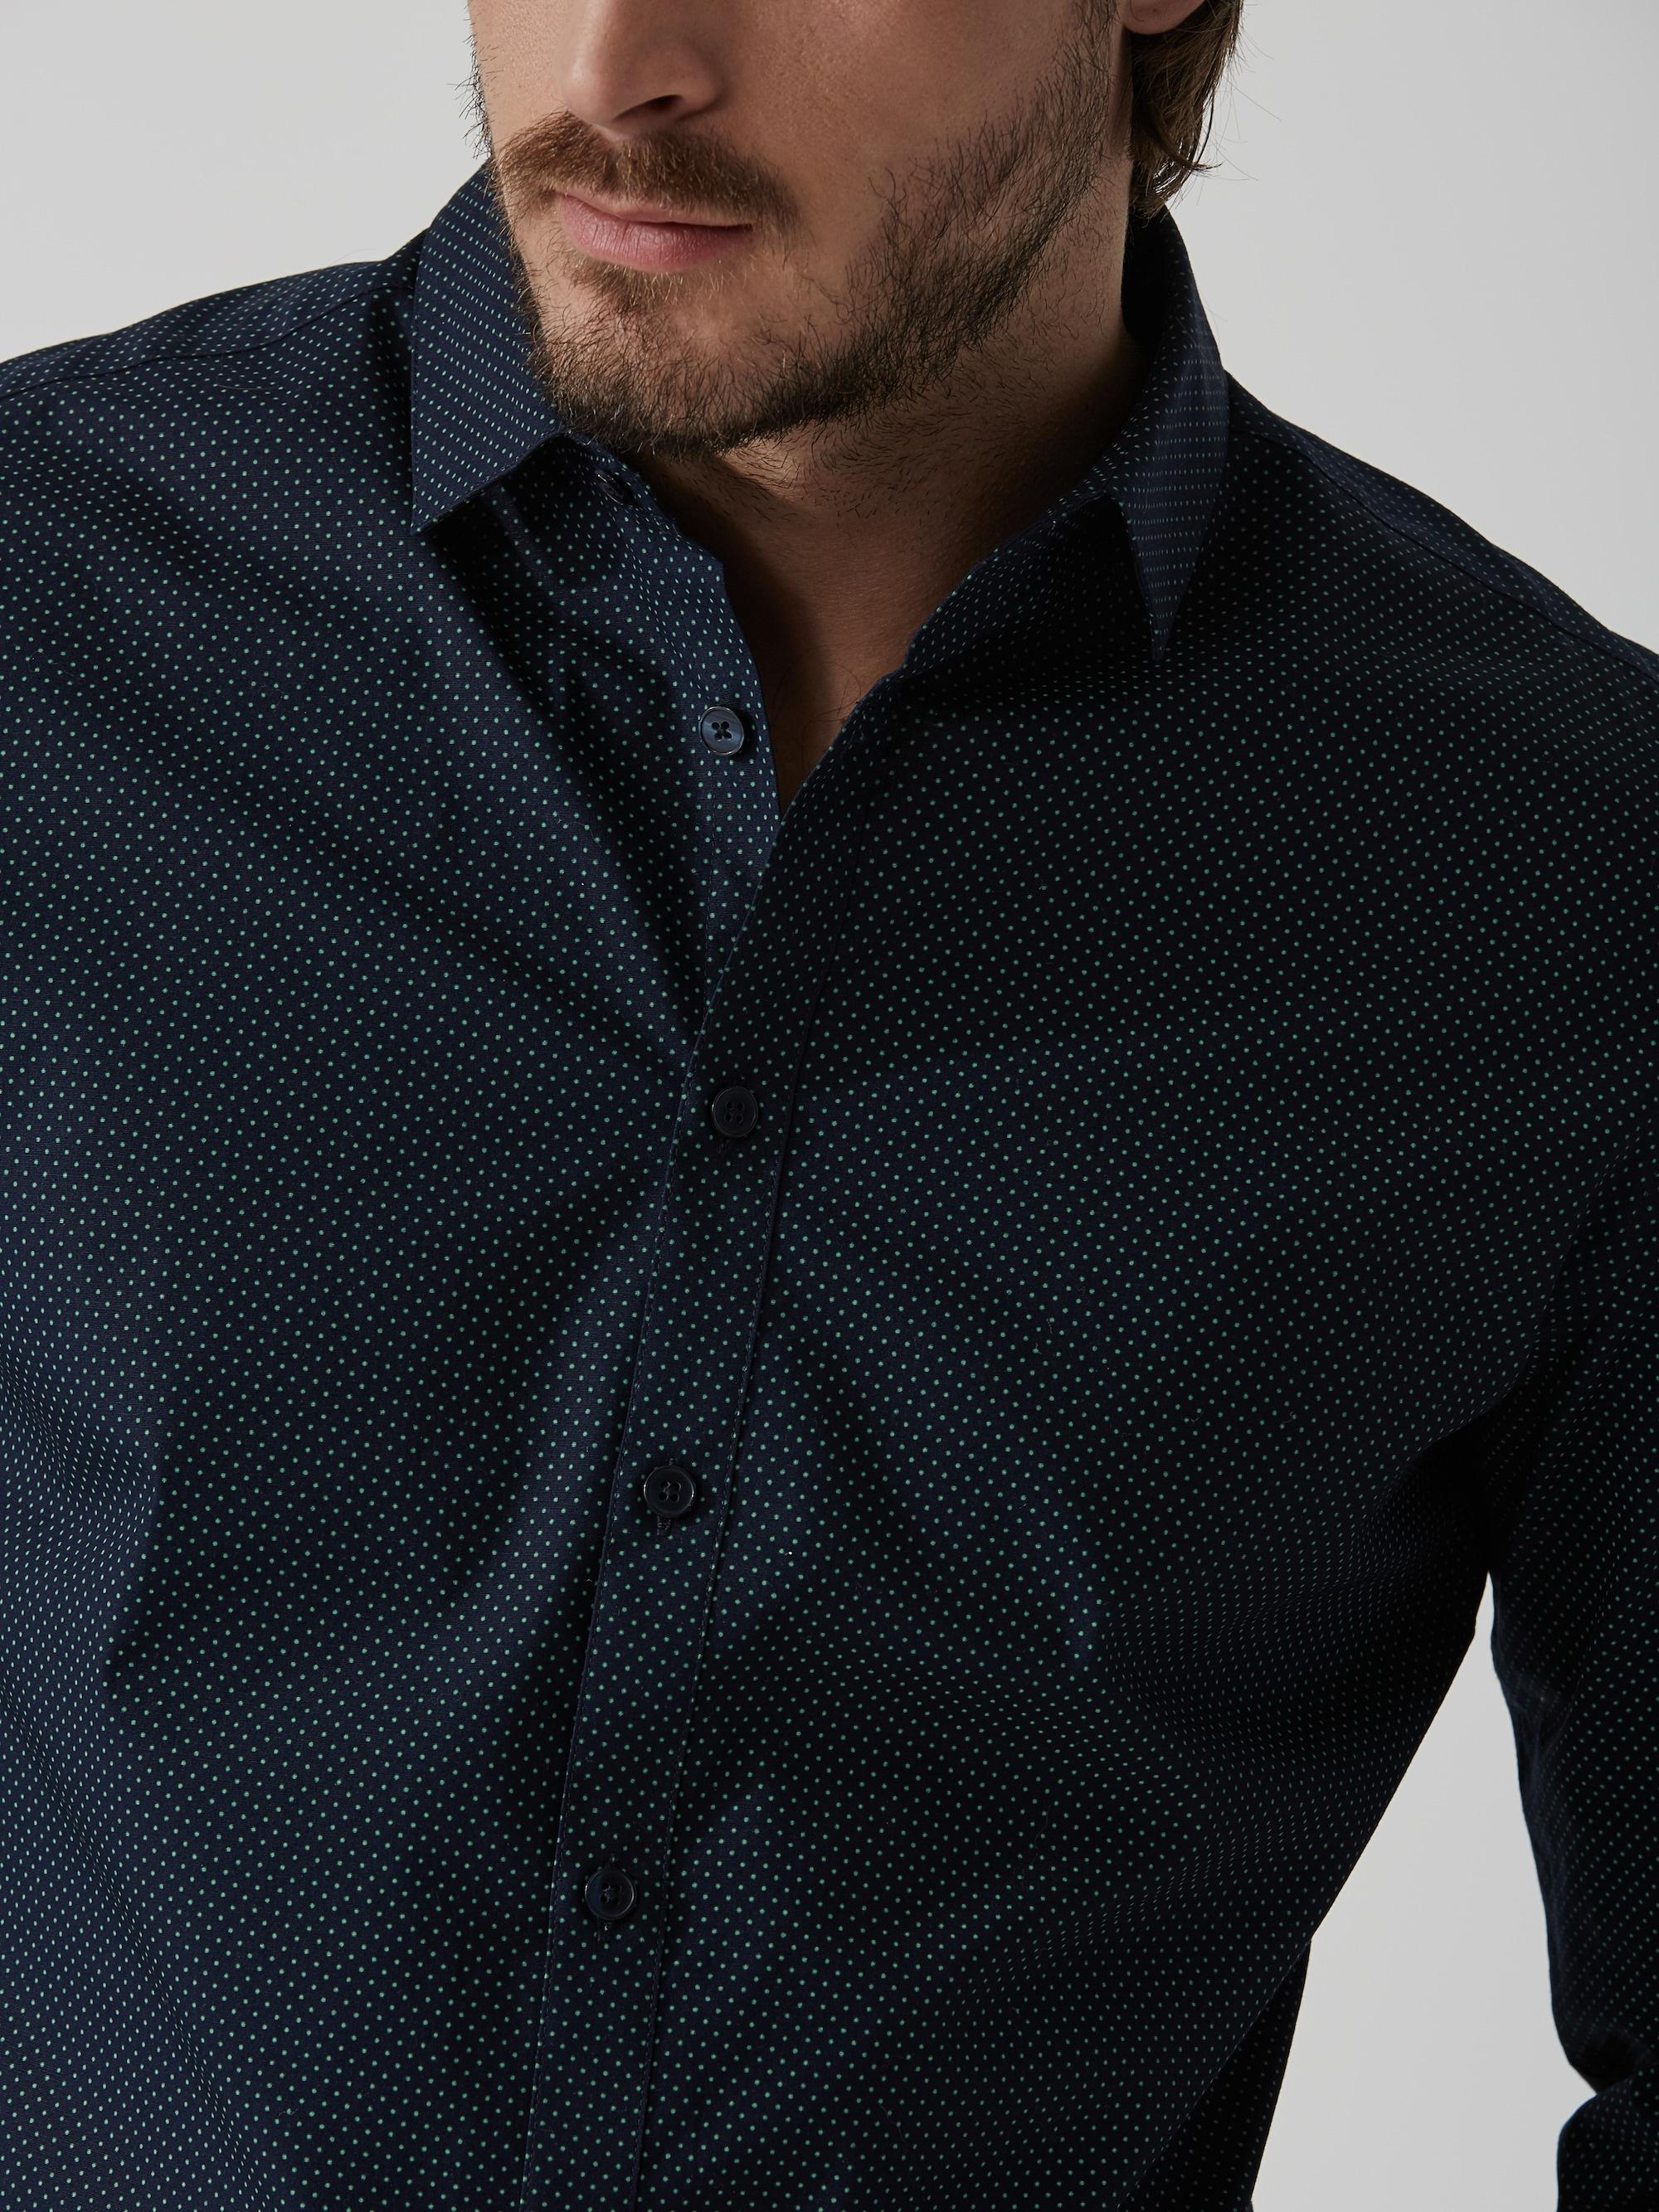 Lyst frank oak the andover stretch dress shirt in navy for Frank and oak shirt